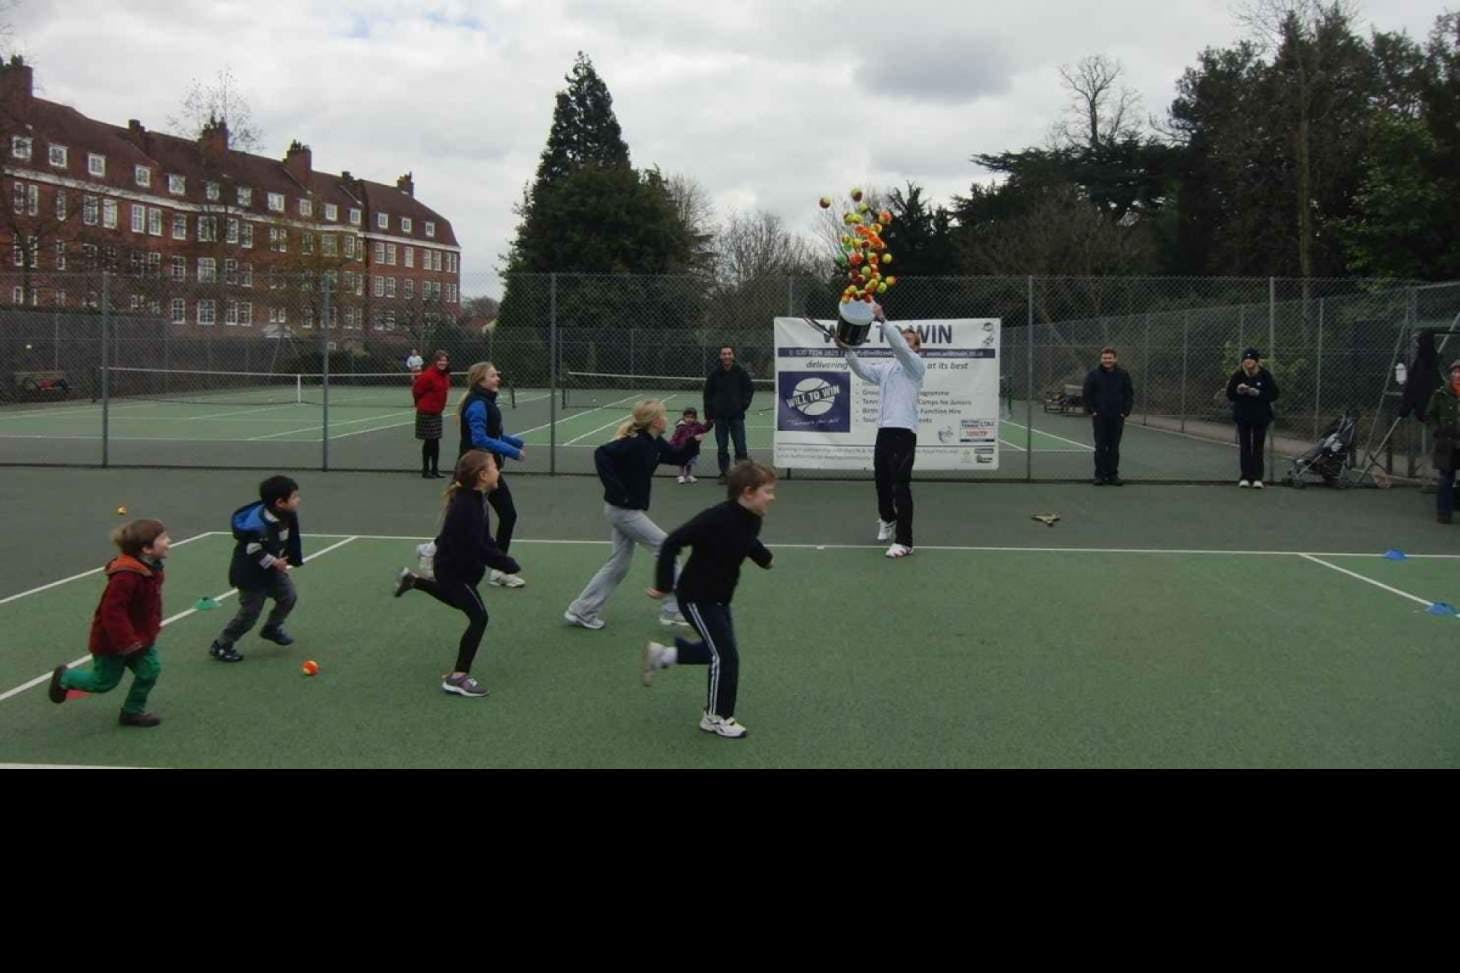 York House Gardens Outdoor | Hard (macadam) tennis court